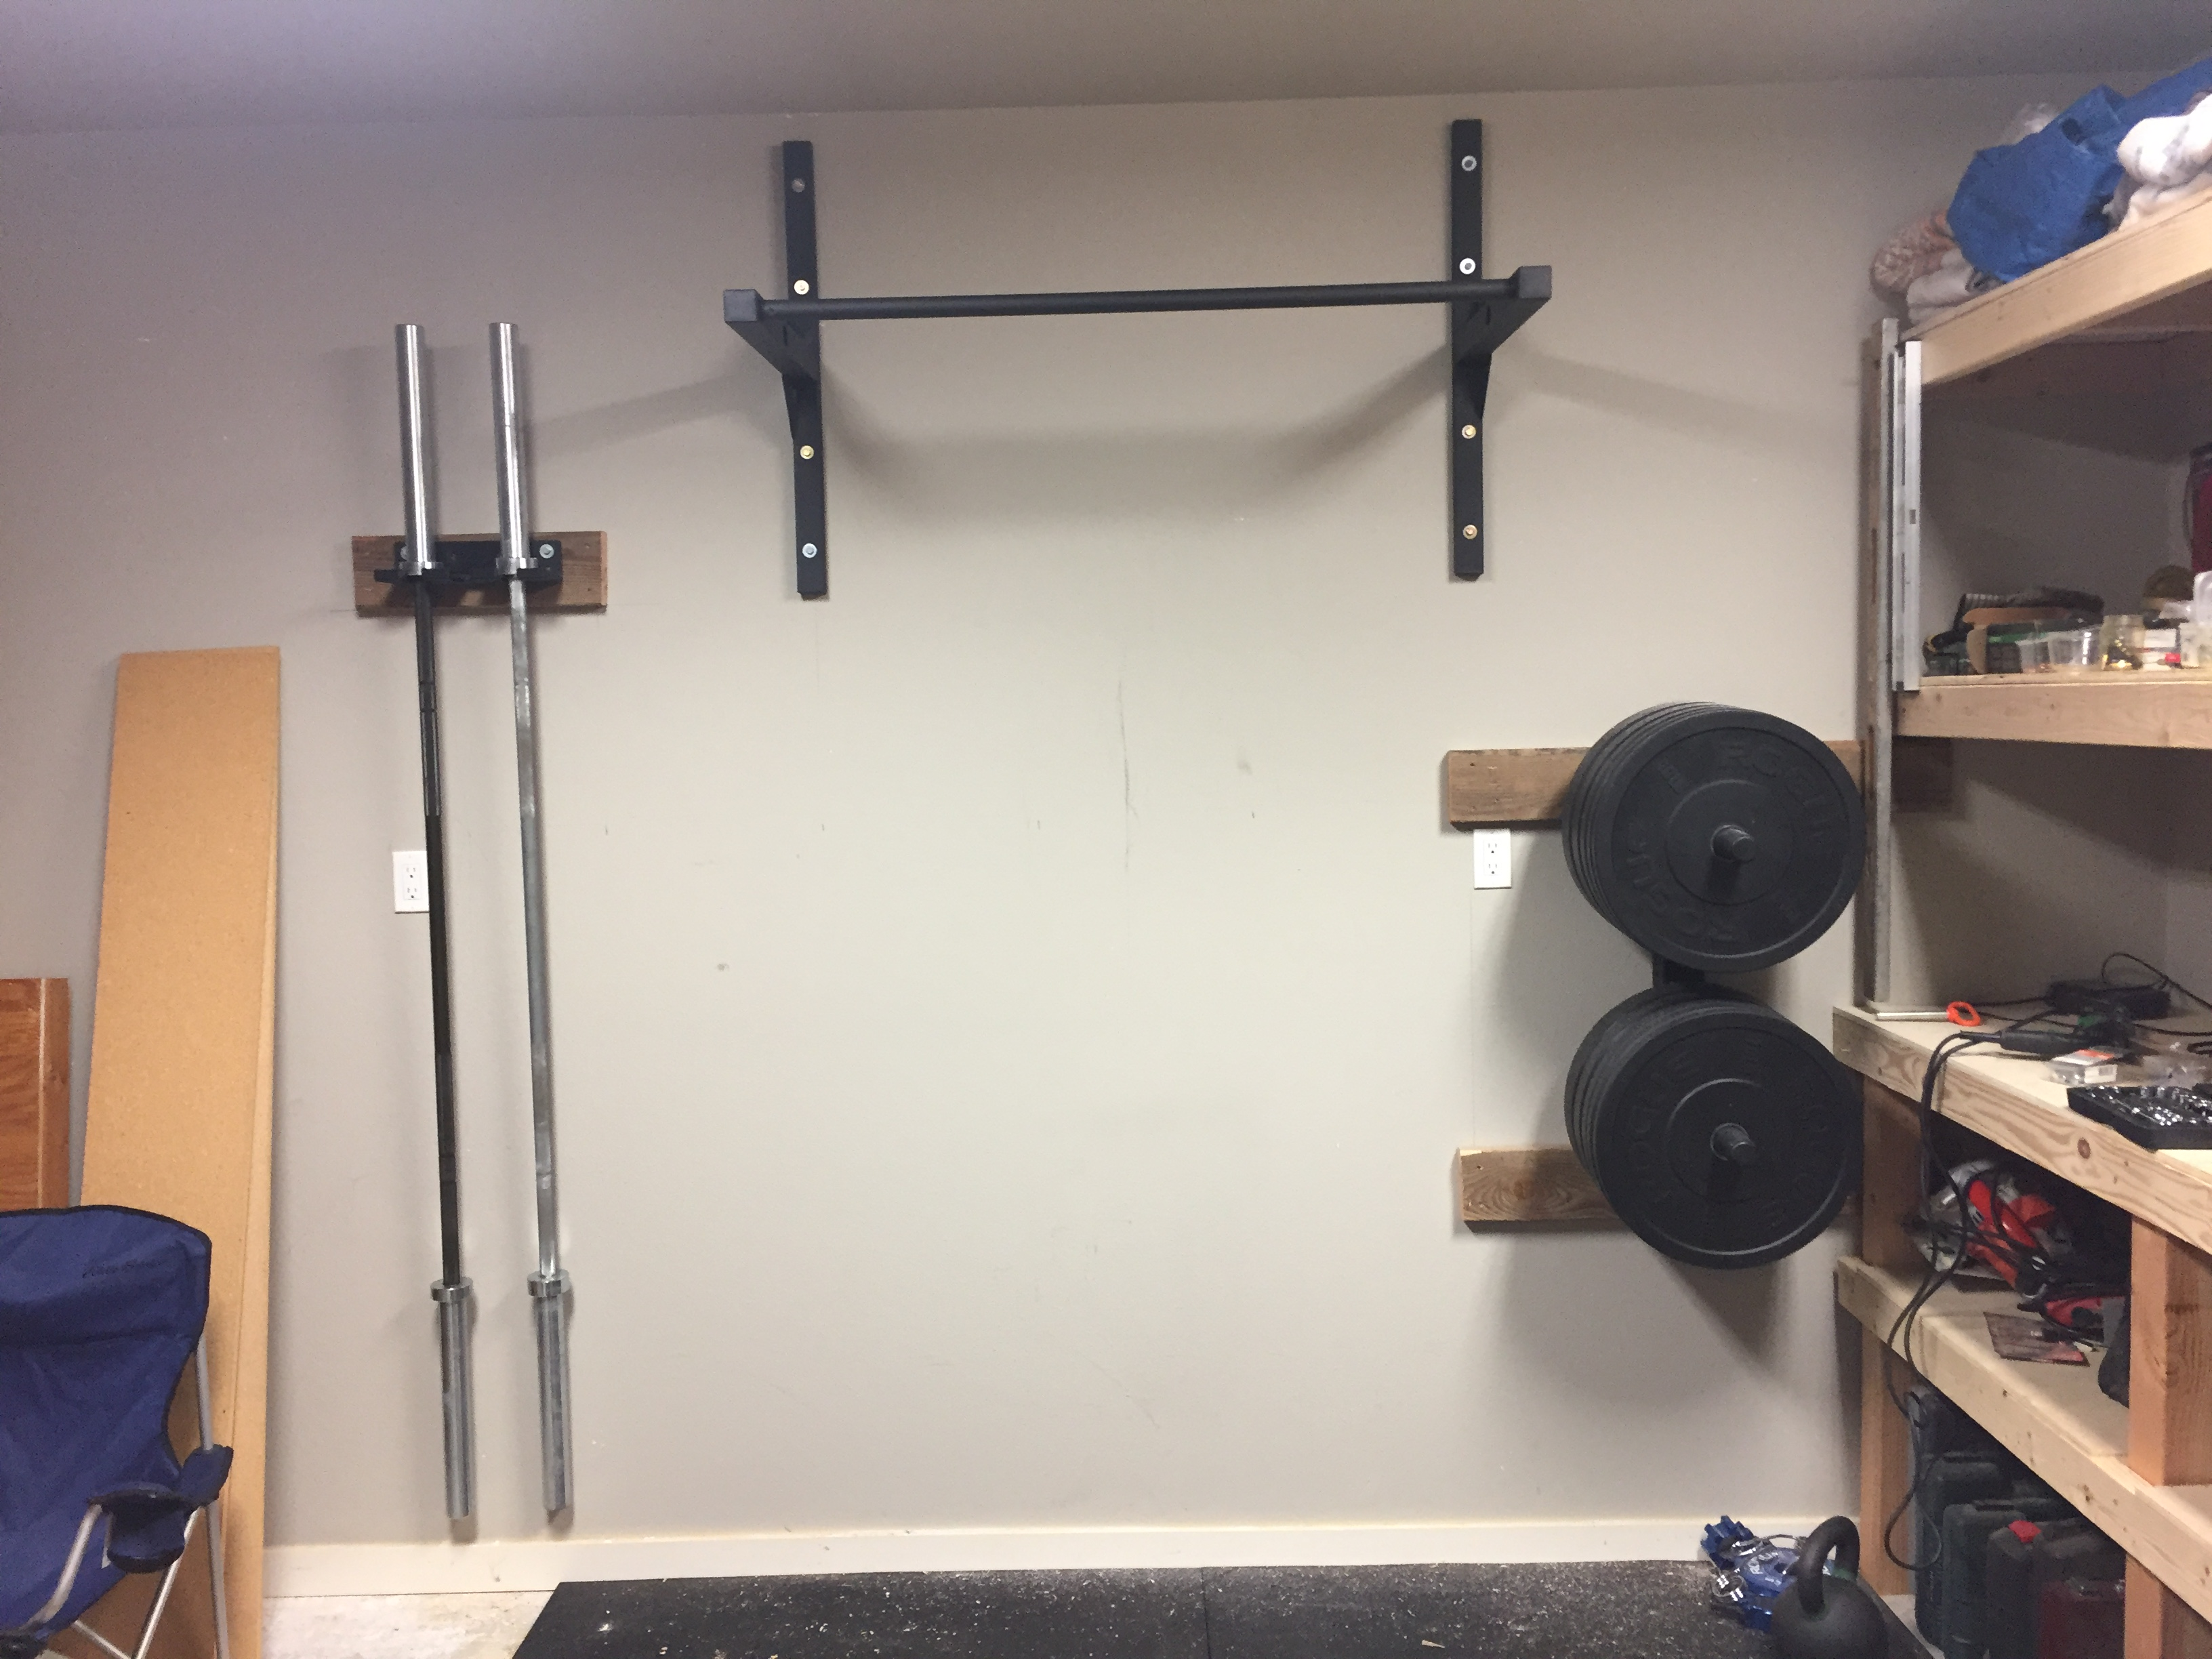 Diy garage gym pull up bar stud bar ceiling or wall mounted pull